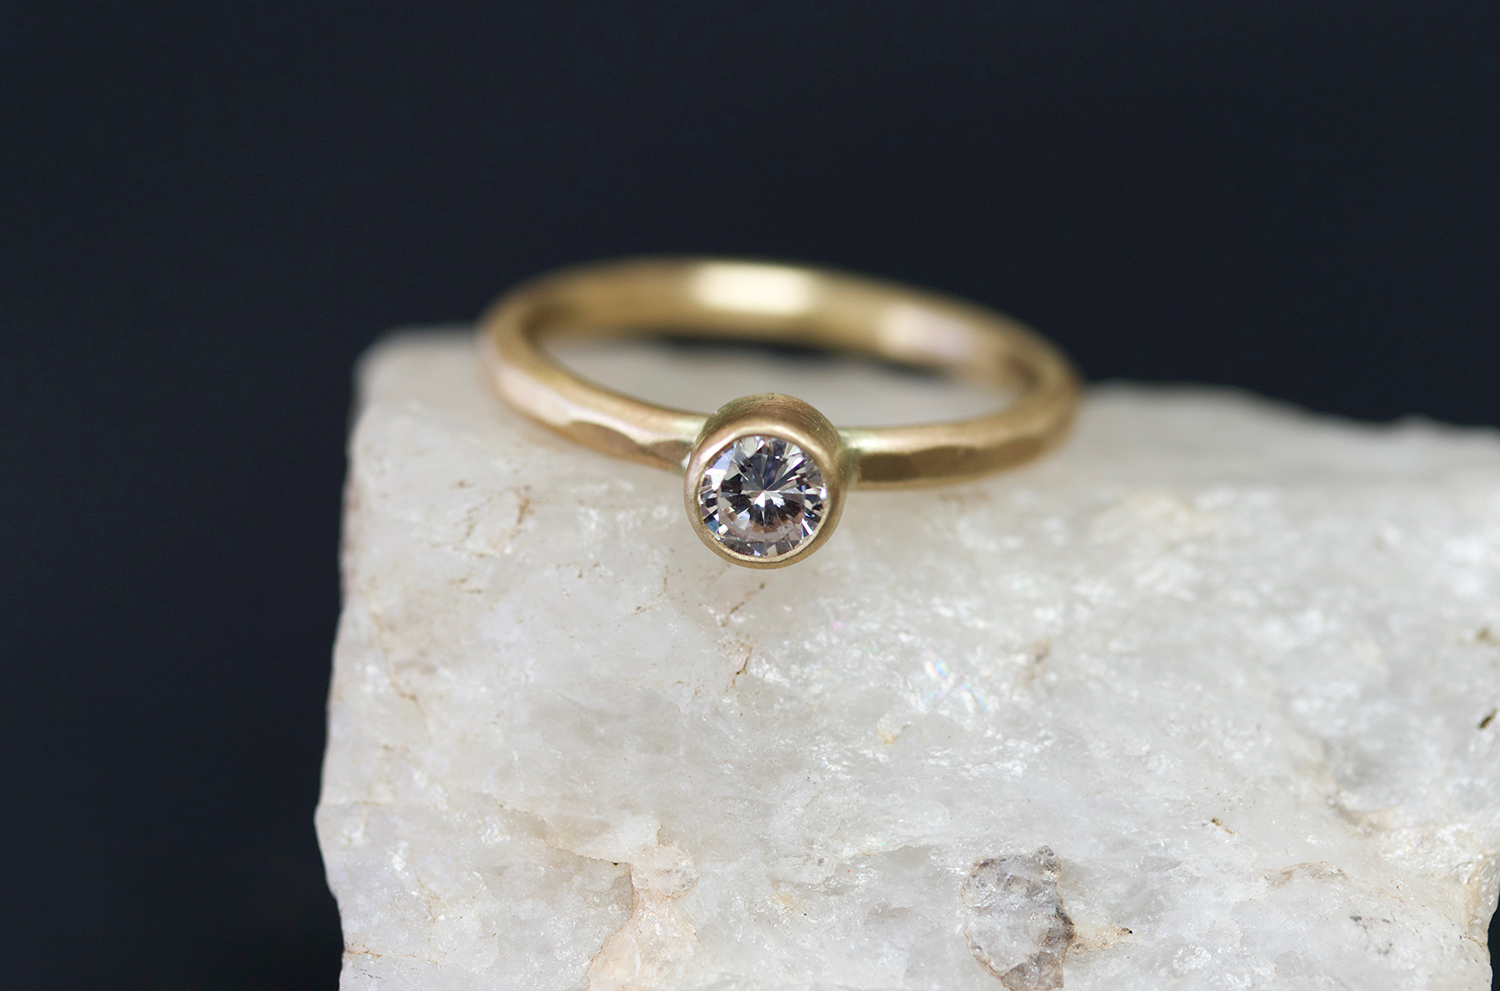 diamond mitla ring small.jpg